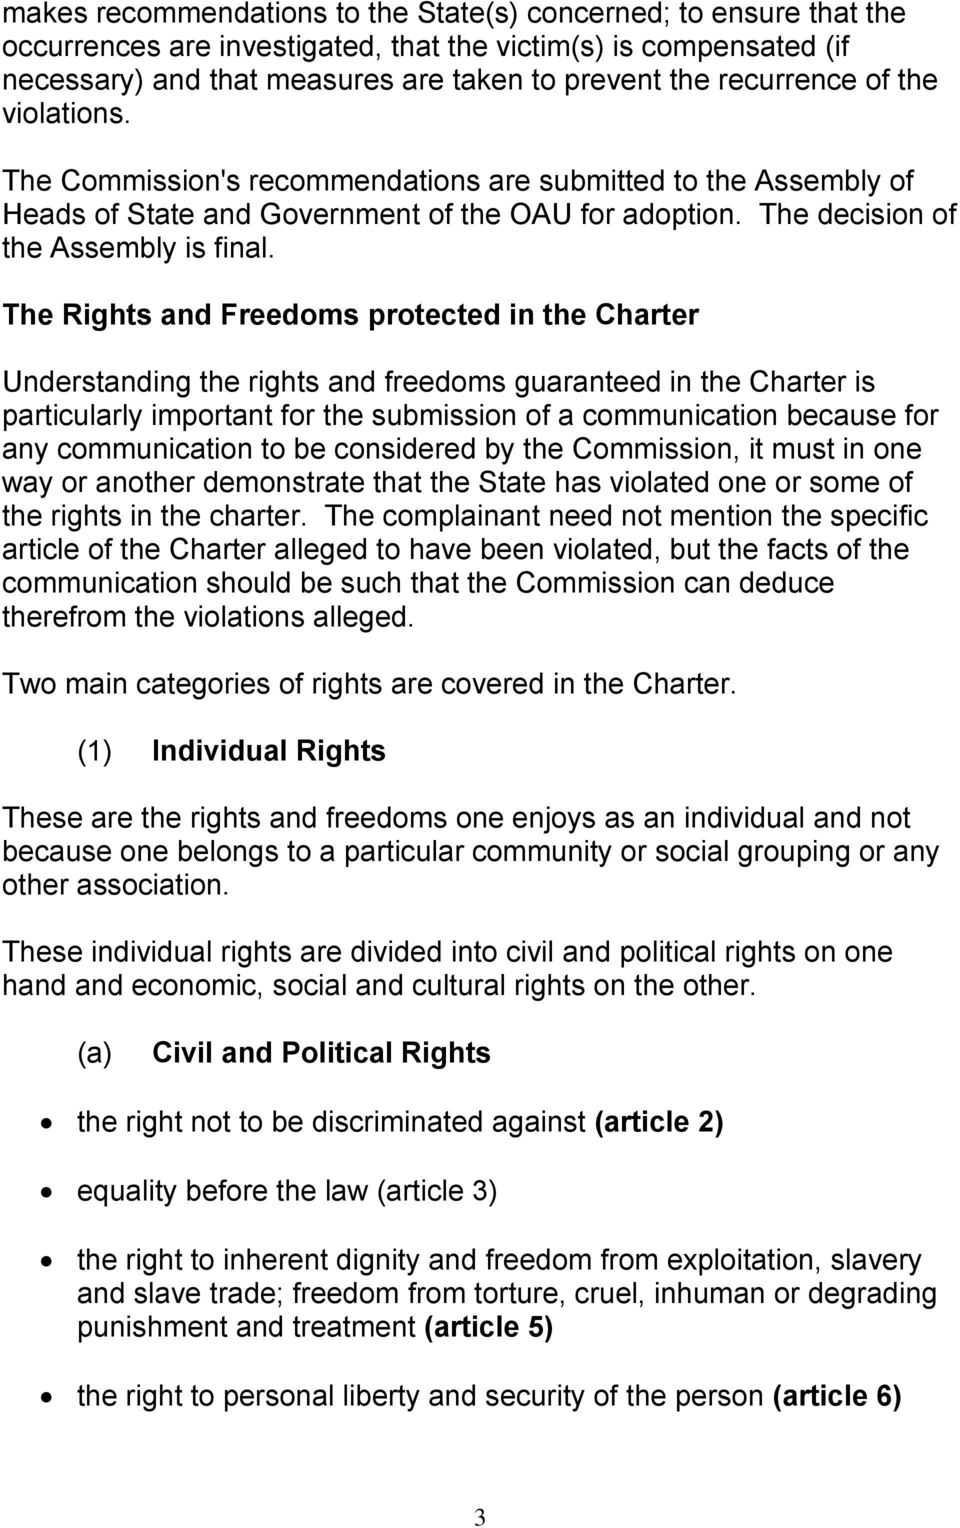 The Rights and Freedoms protected in the Charter Understanding the rights and freedoms guaranteed in the Charter is particularly important for the submission of a communication because for any